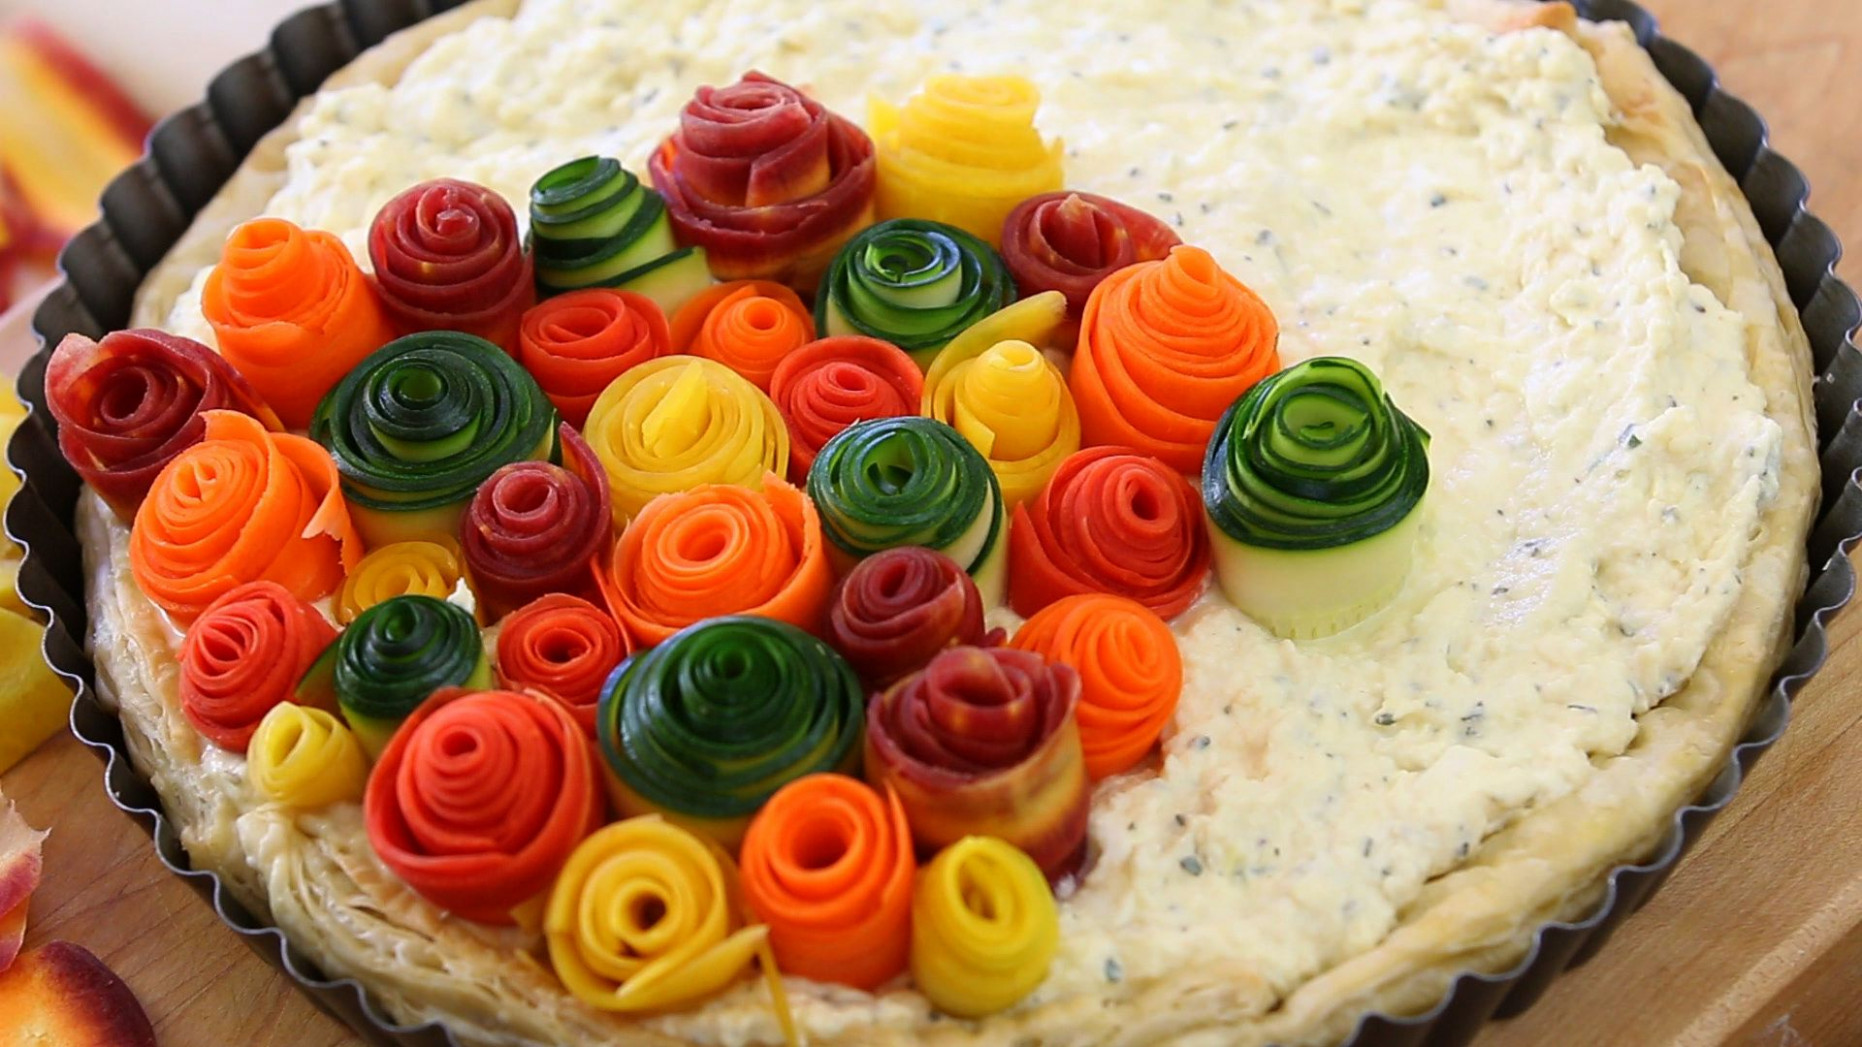 Zucchini and carrots roses tart | Buona Pappa - vegetable recipes zucchini